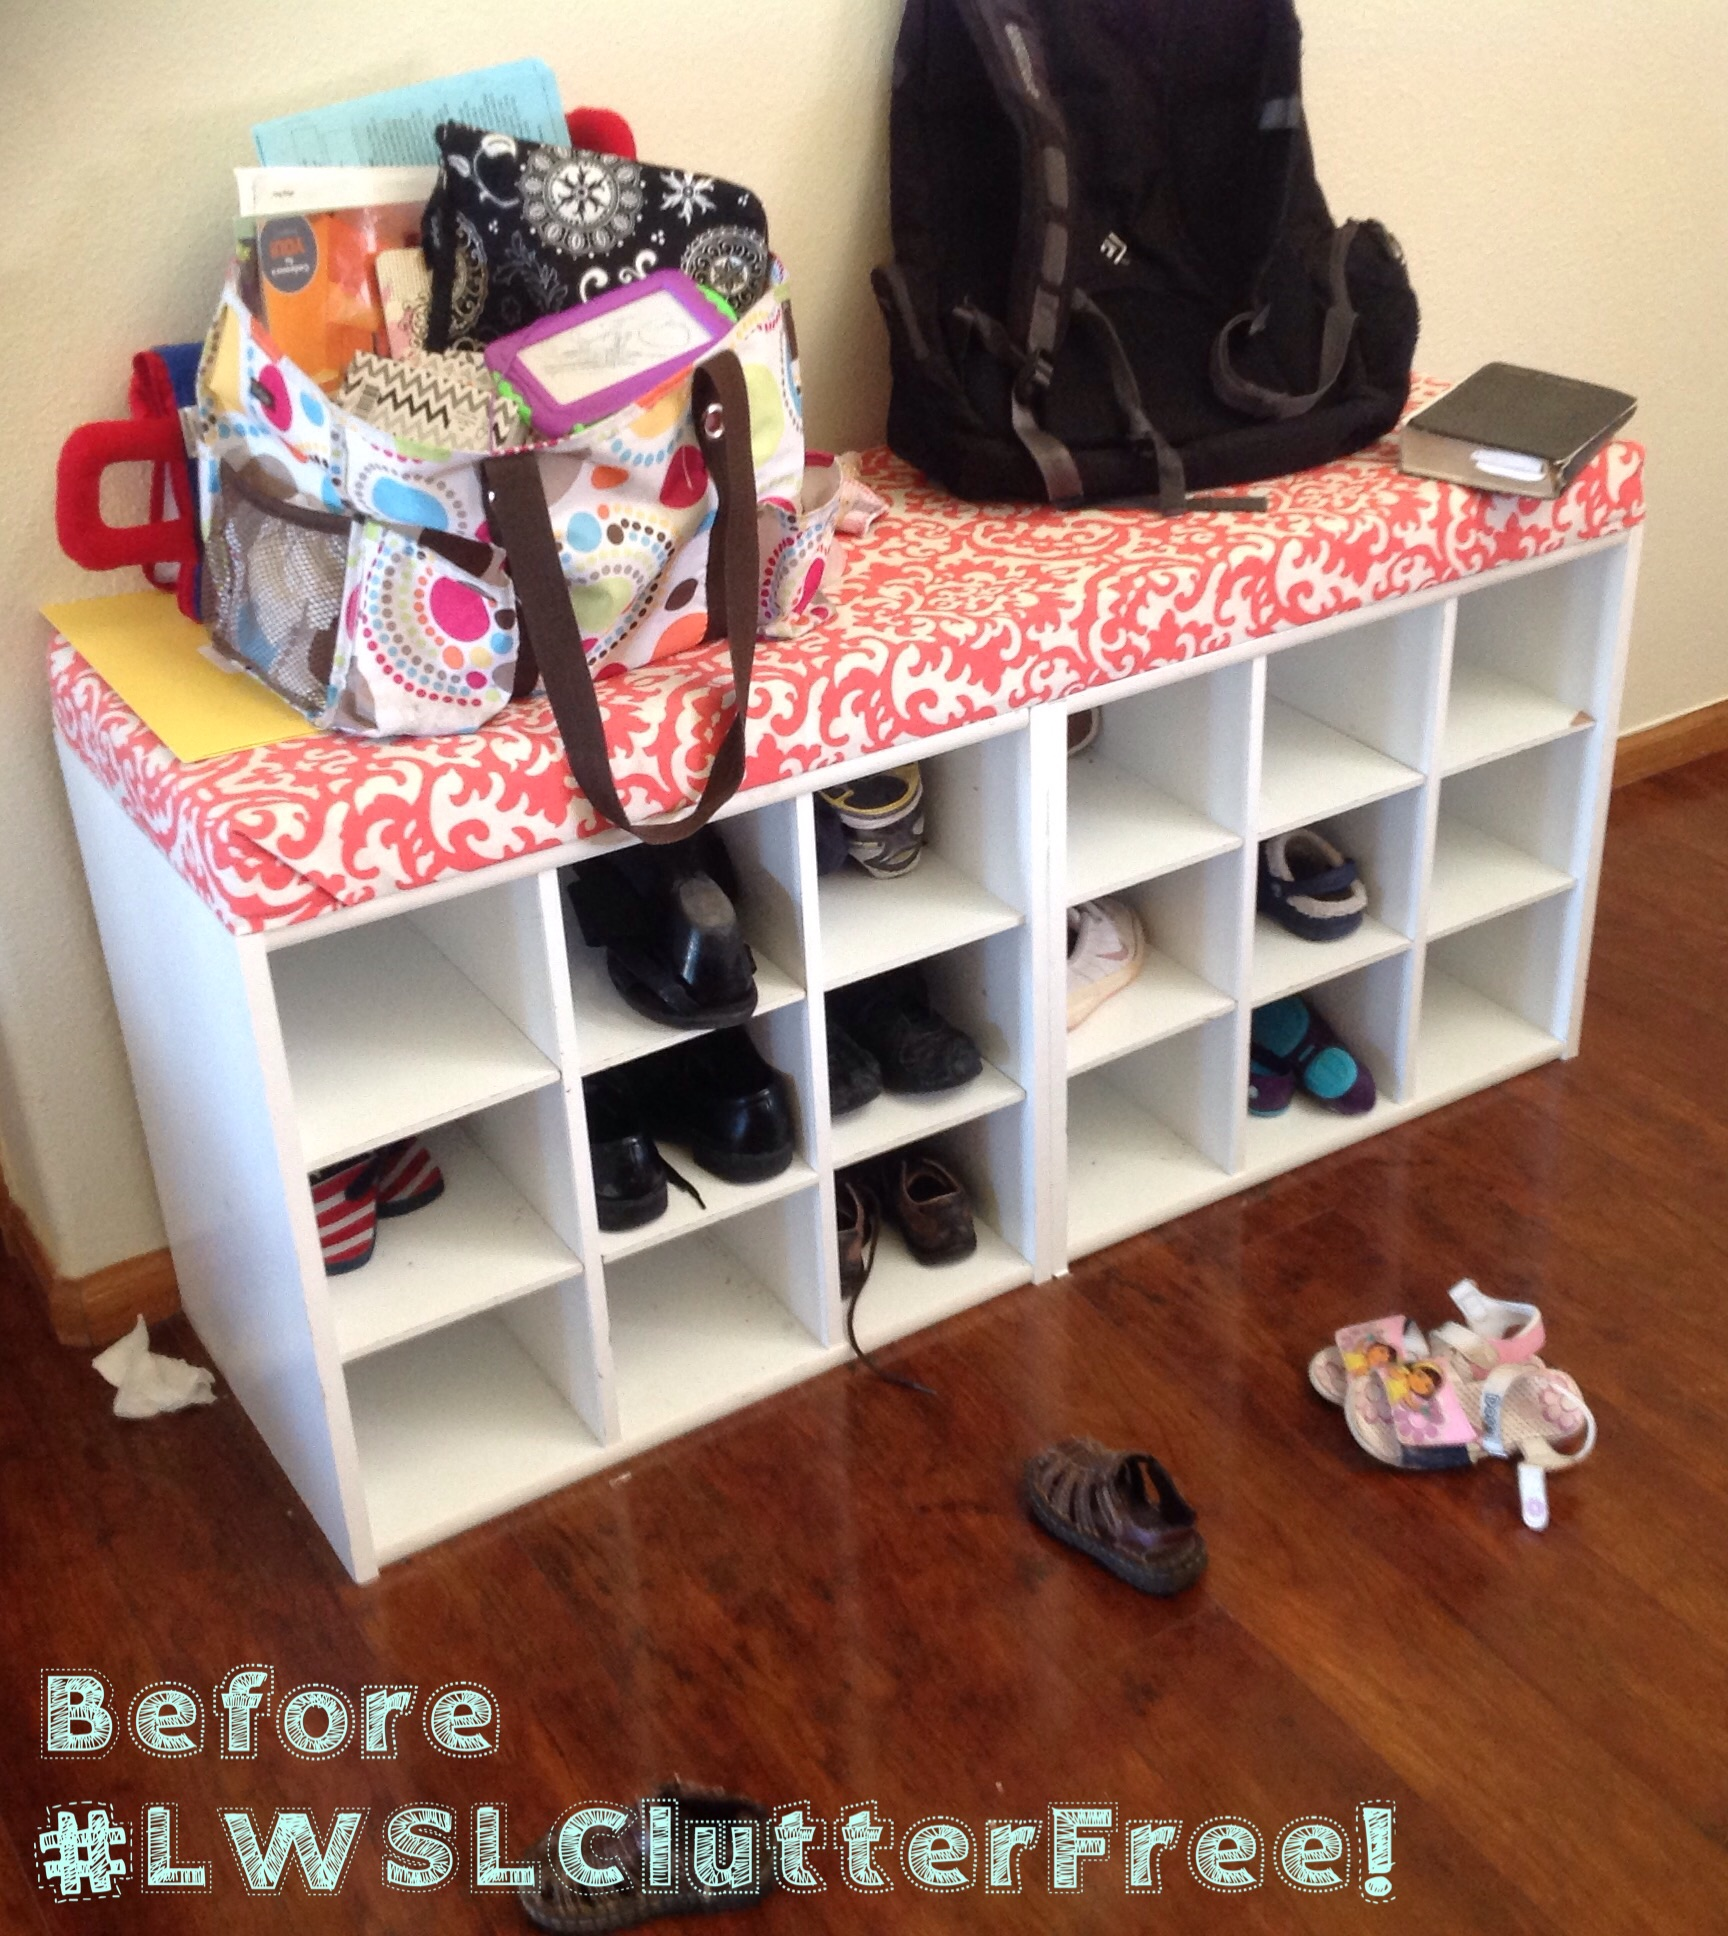 Clutter Free Challenge:  Day 2